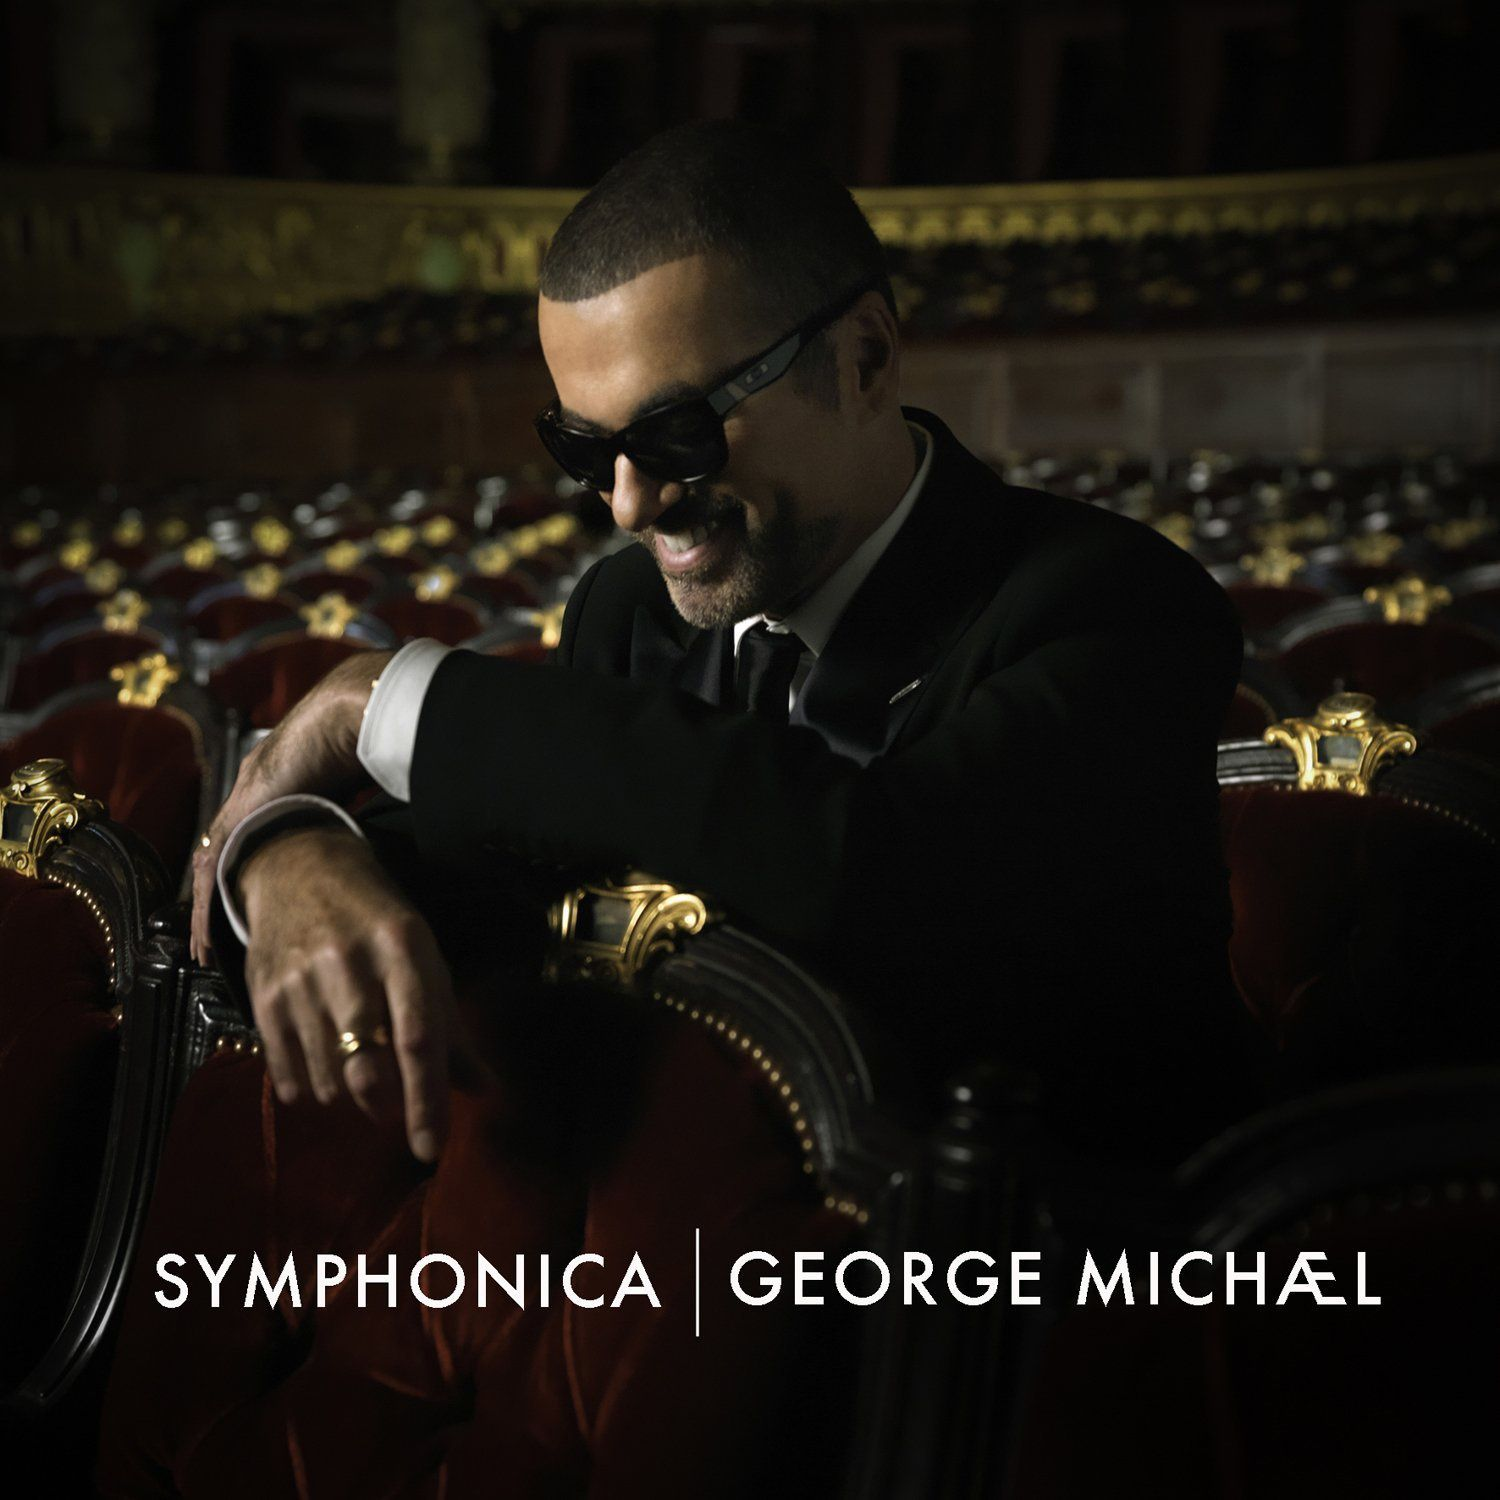 ALBUM SYMPHONICA  - PHOTO DE CAROLINE TRUE OPERA GARNIER PARIS -